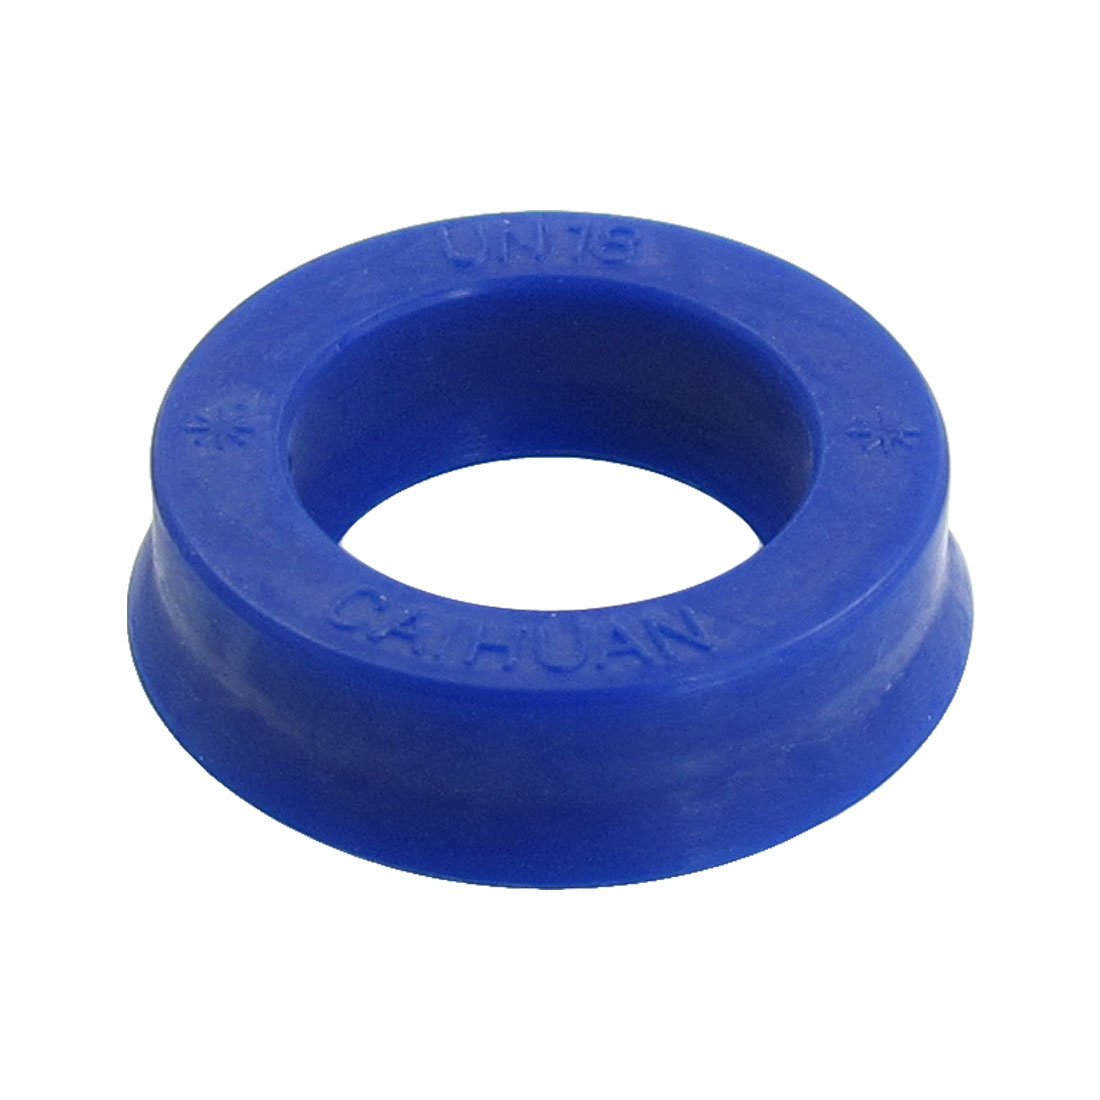 Blue PU 18mm x 28mm x 8mm Double Lip Sealing Cushion Dust Seal Ring